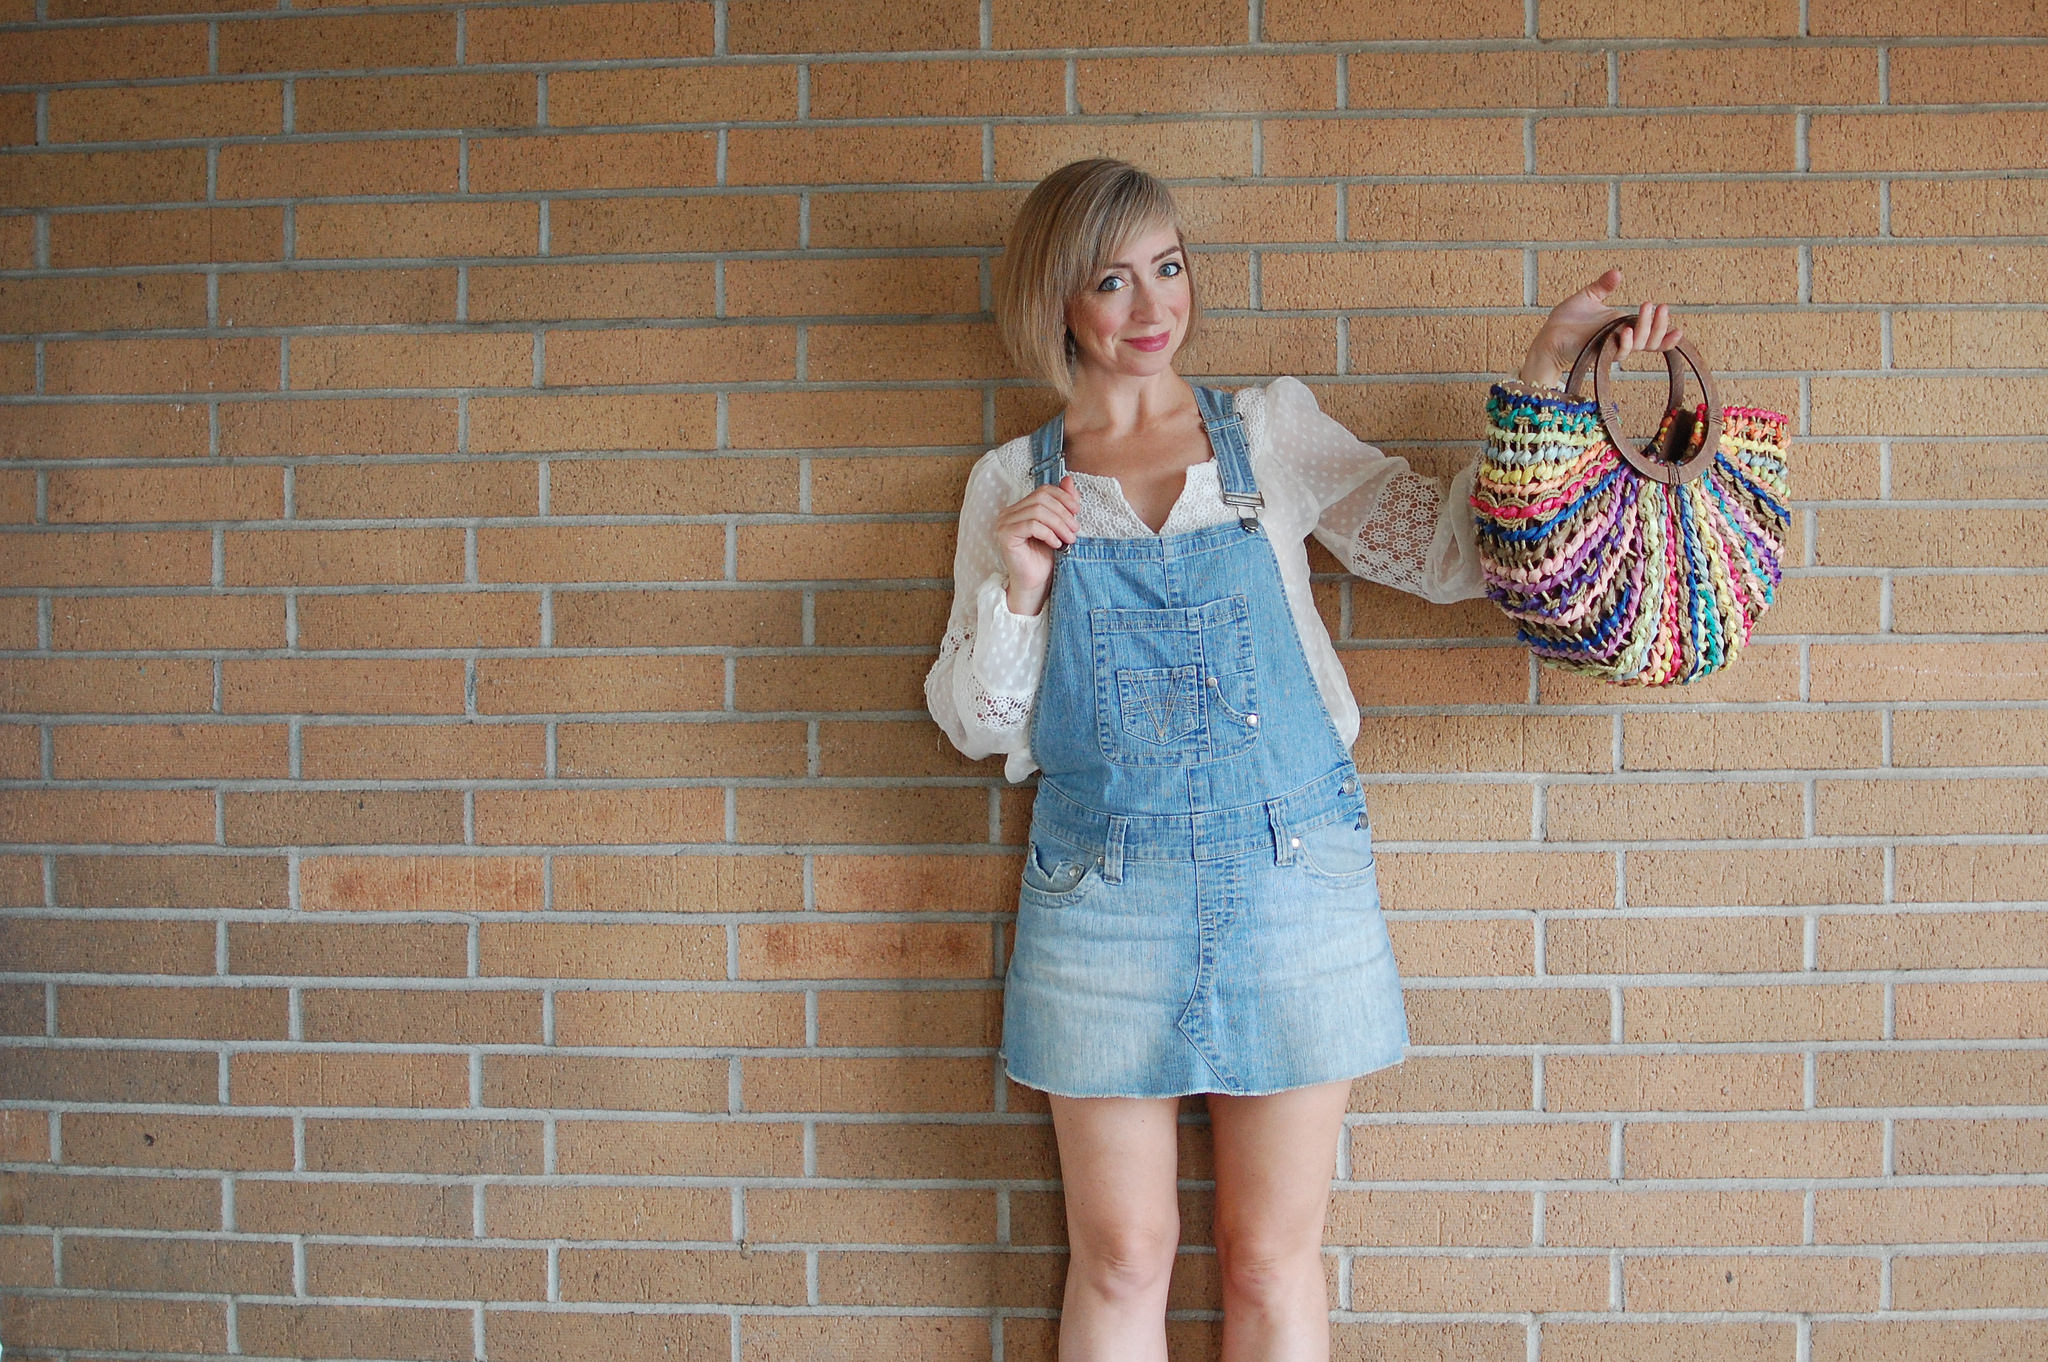 boho overalls 100% thrifted casual daily outfit blog weekend wear ootd whatiwore2day